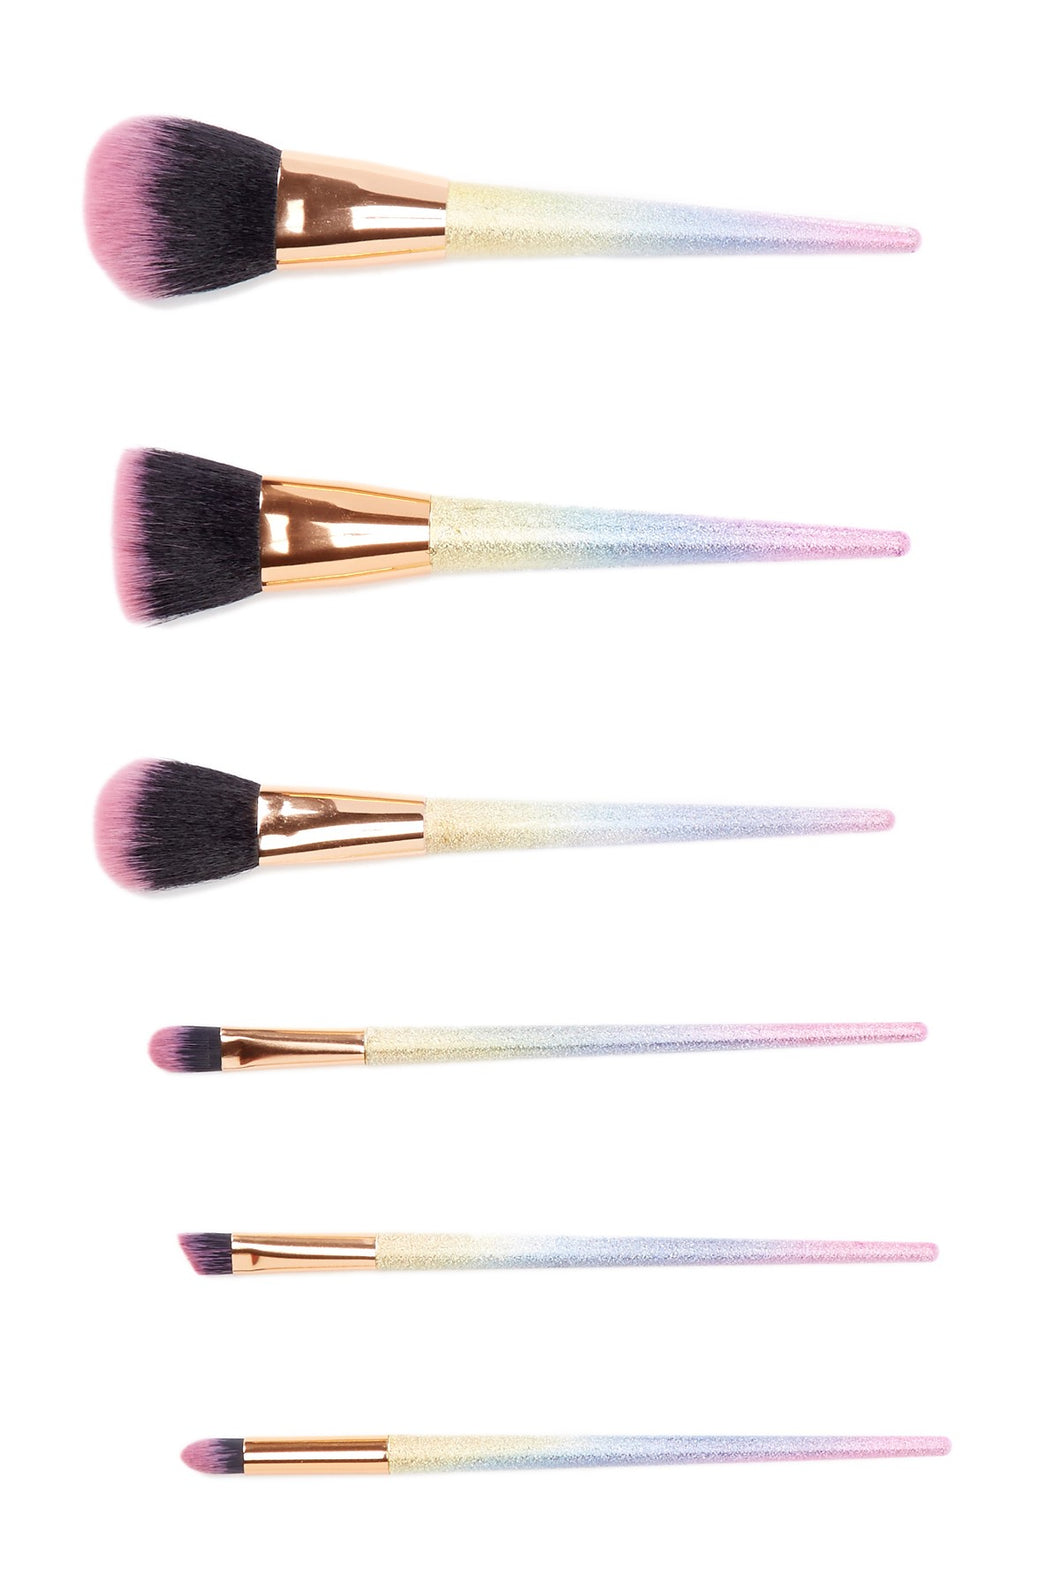 Unicorn Makeup 6-Piece Brush Set - Rainbow